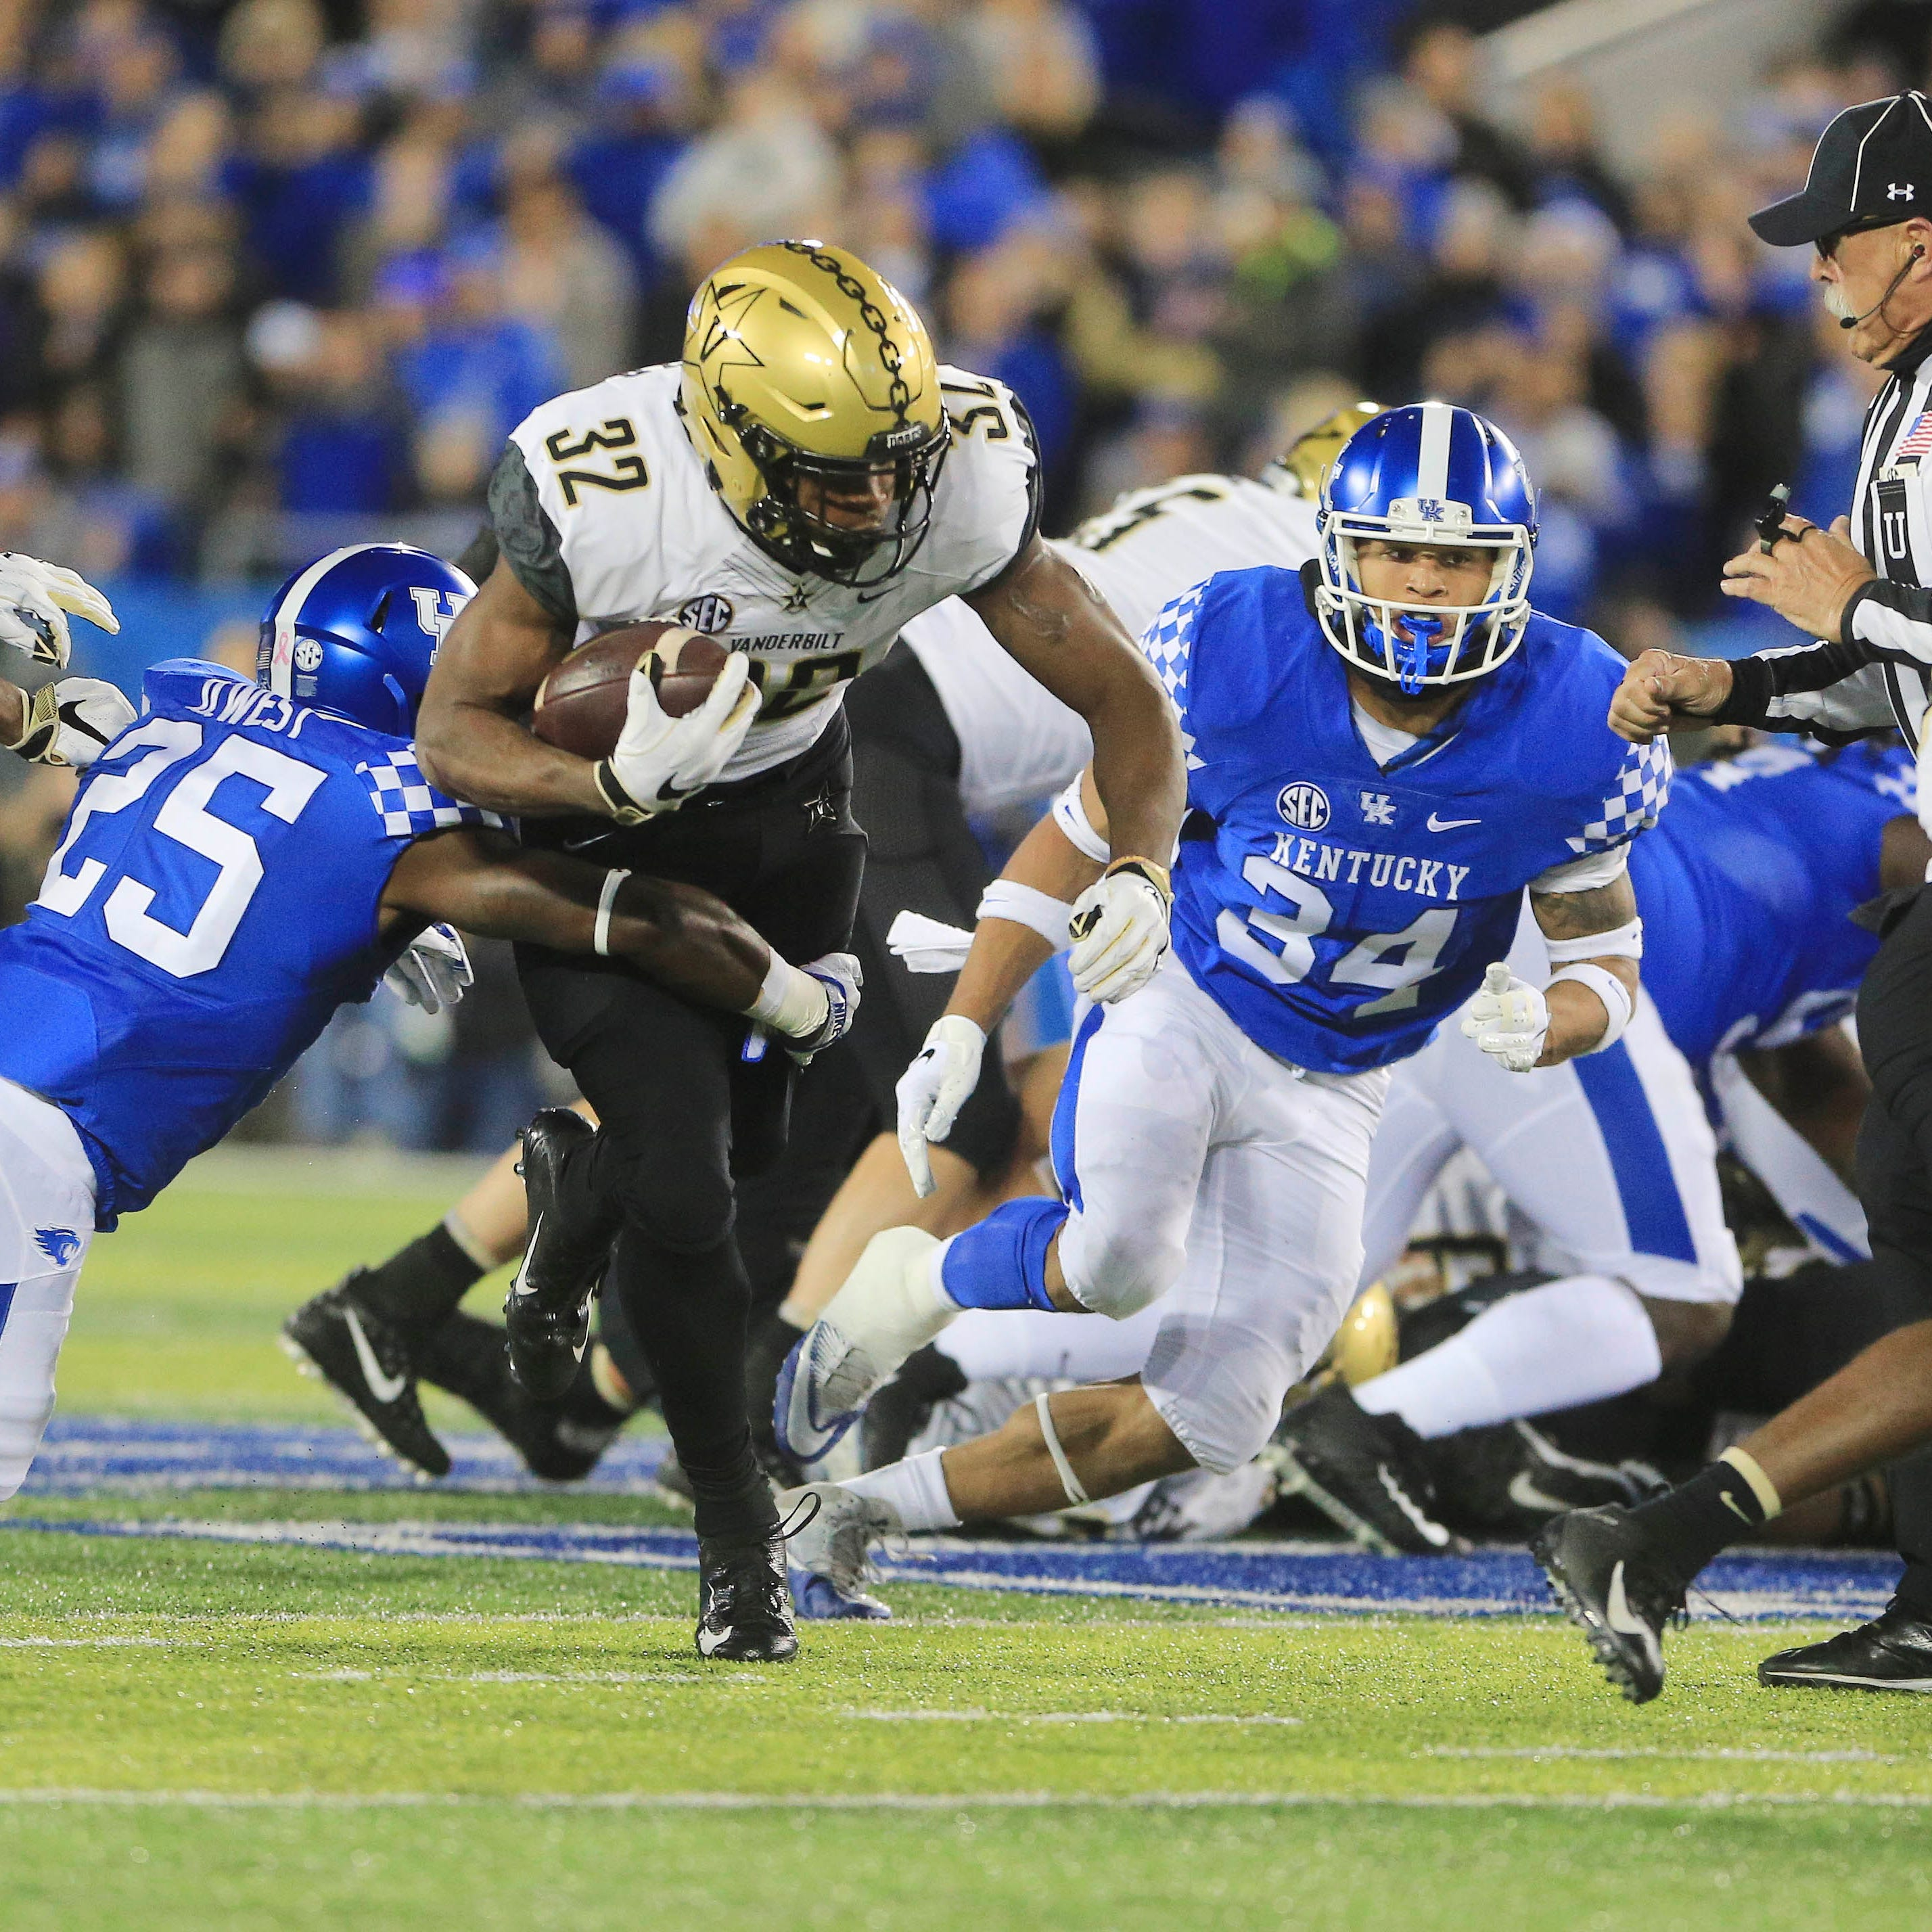 Kentucky 14, Vanderbilt 7: Five things we learned